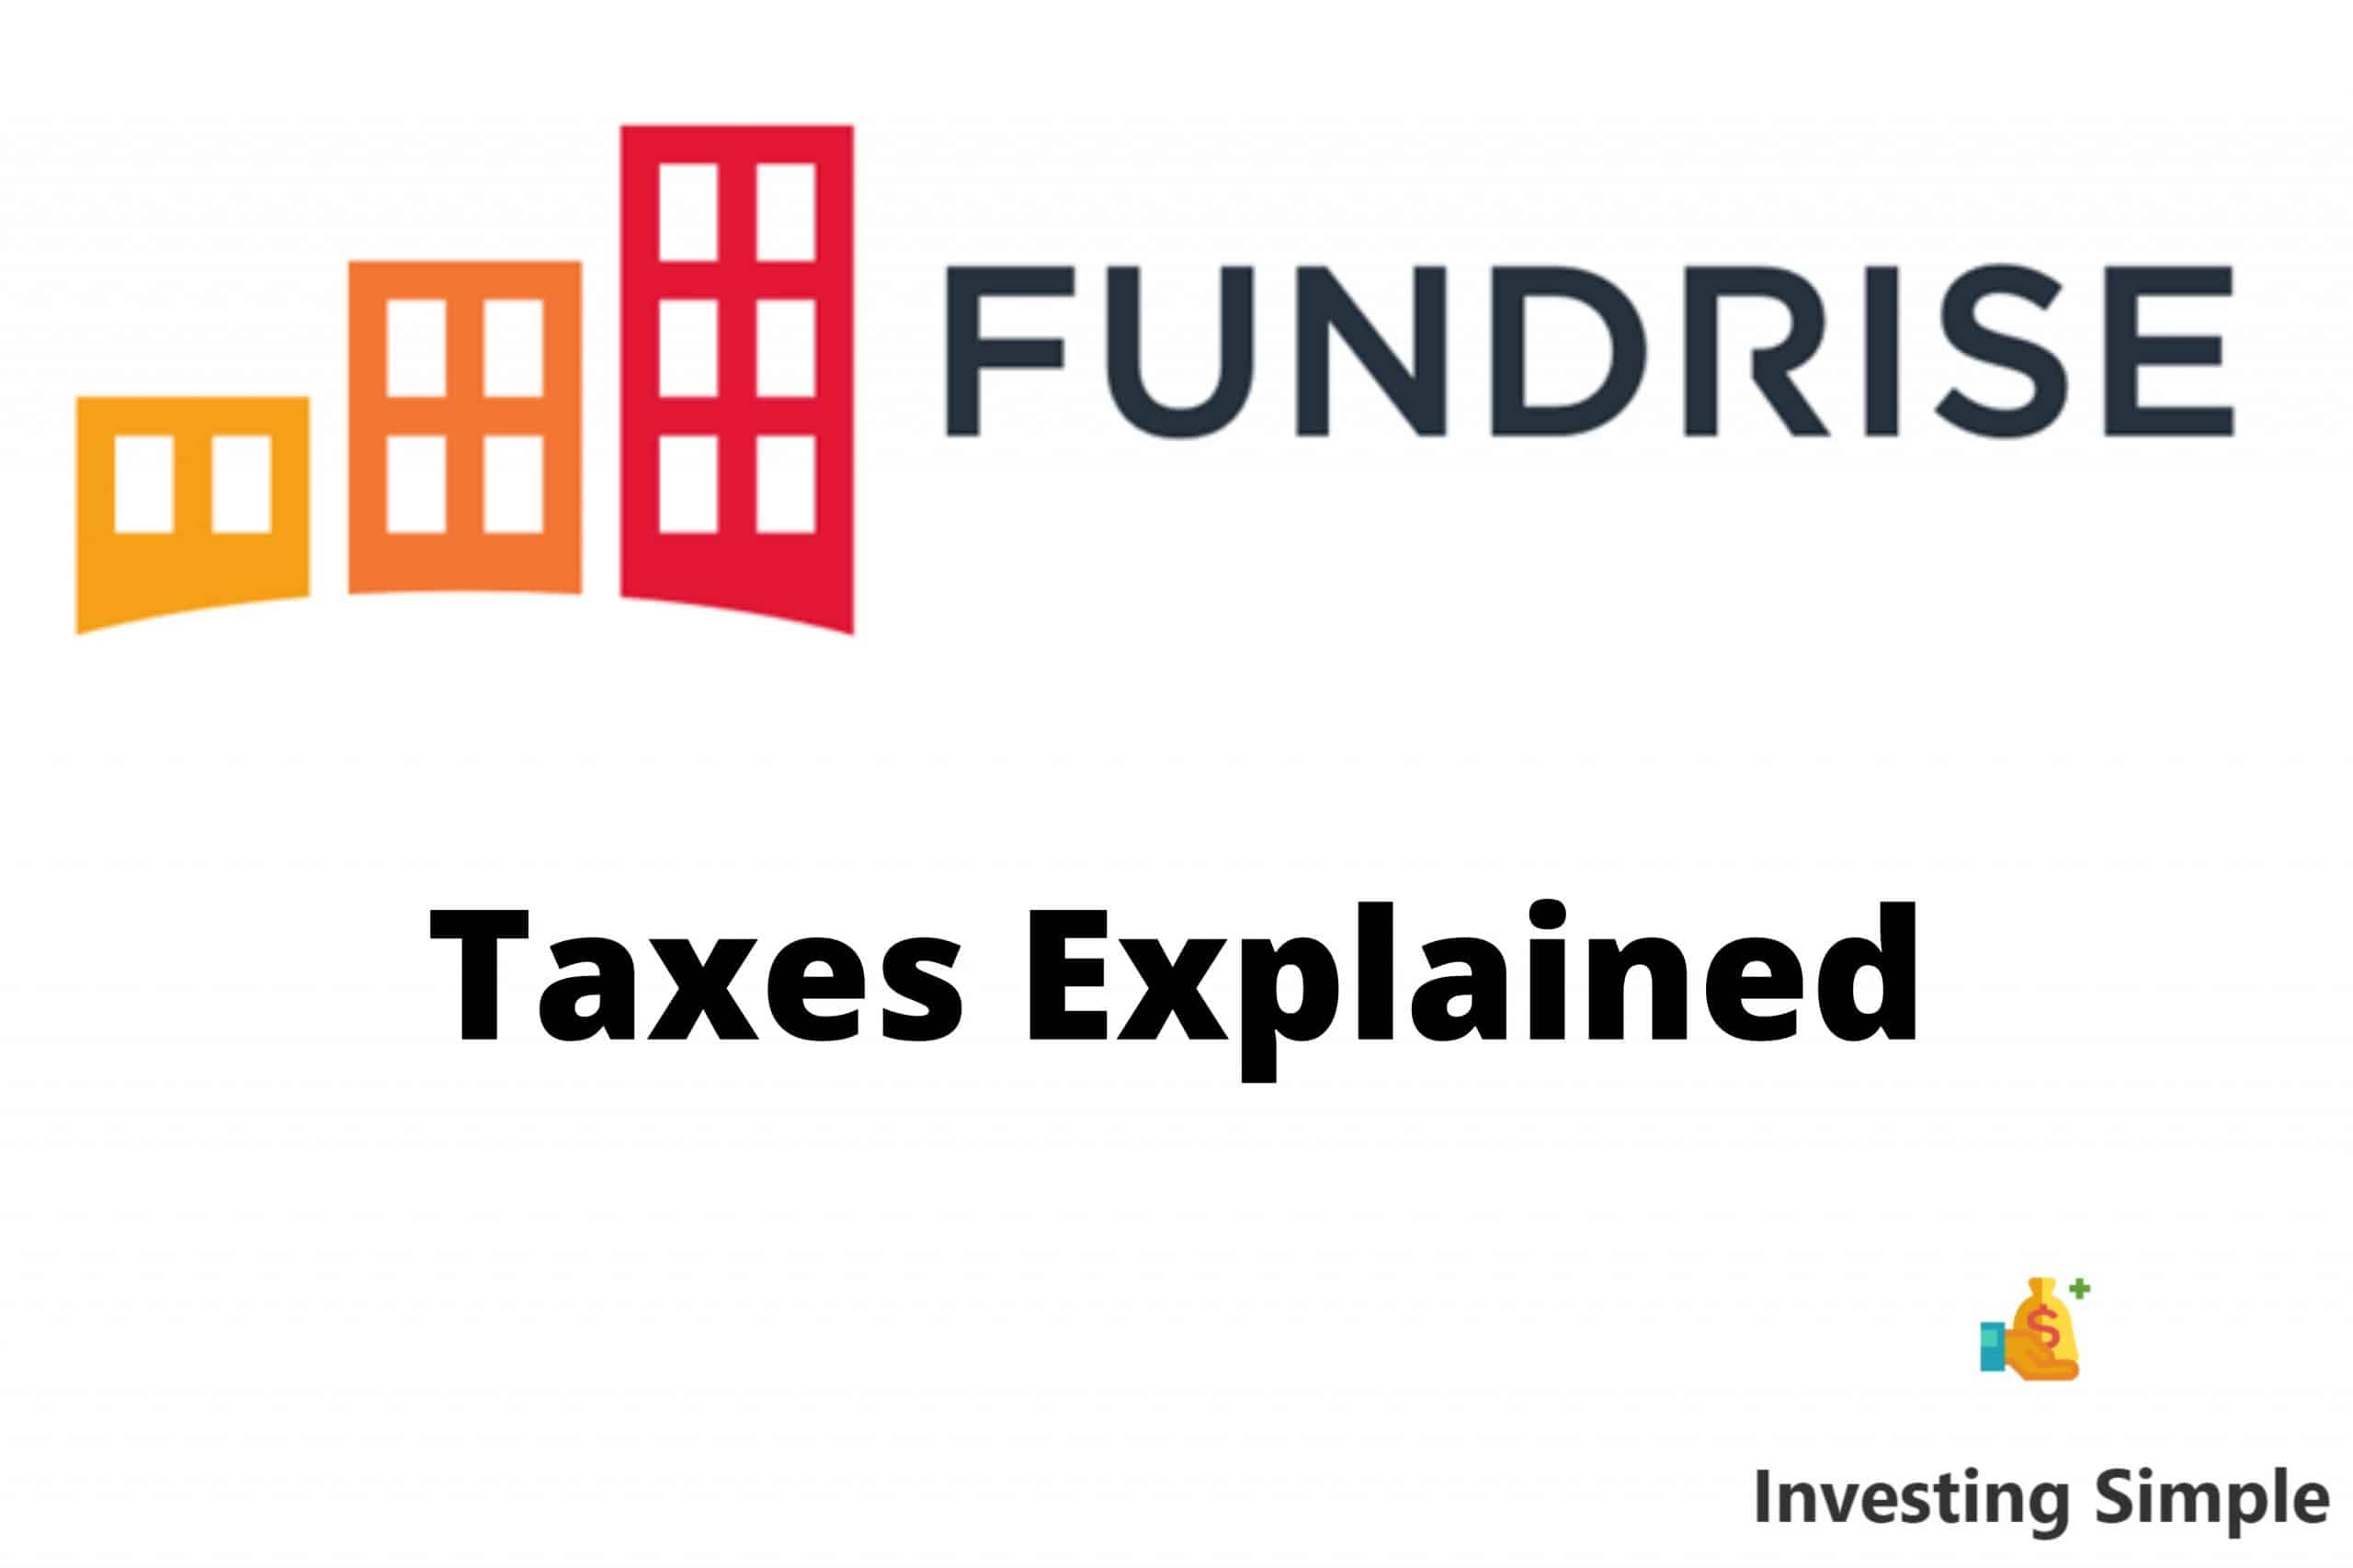 Fundrise taxes explained